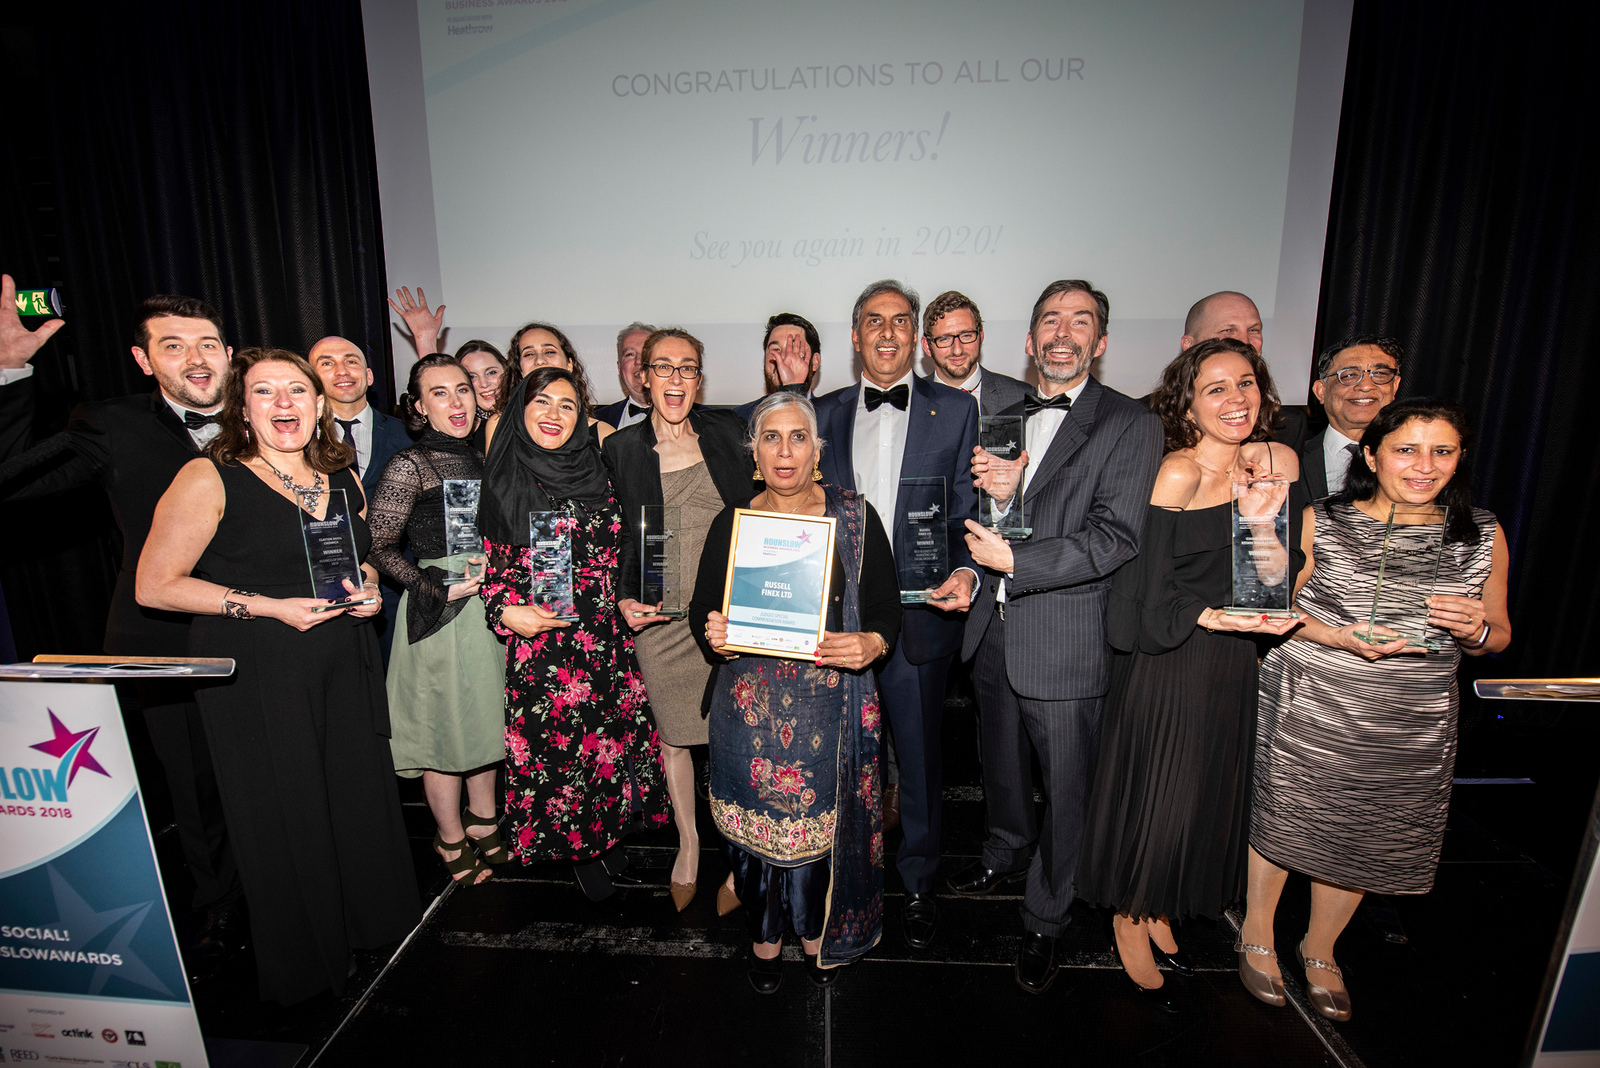 Winners of the Hounslow Business Awards 2018